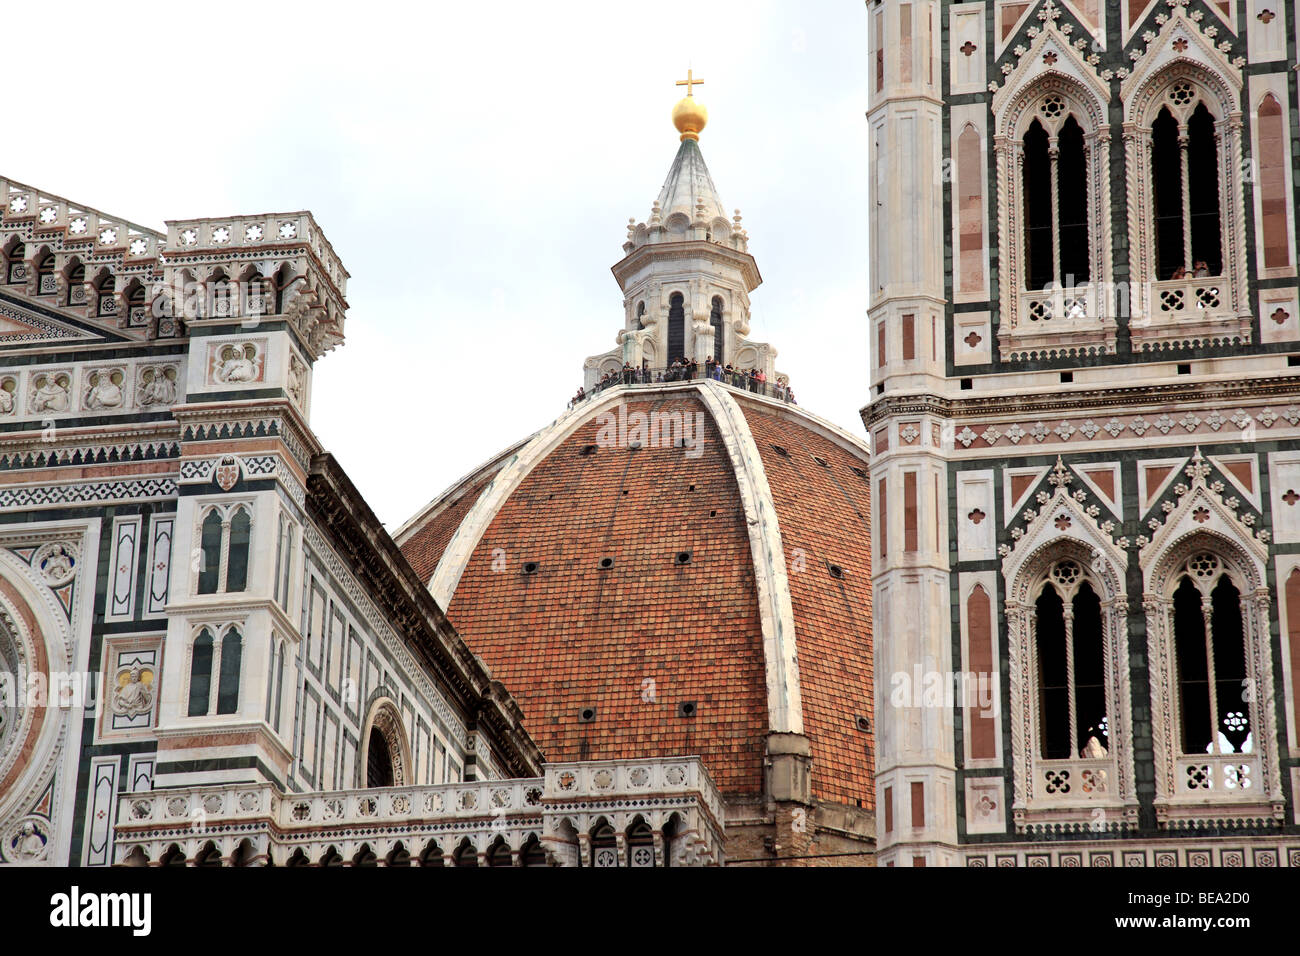 The Duomo and Campanile are the most famous landmarks in Florence Italy - Stock Image